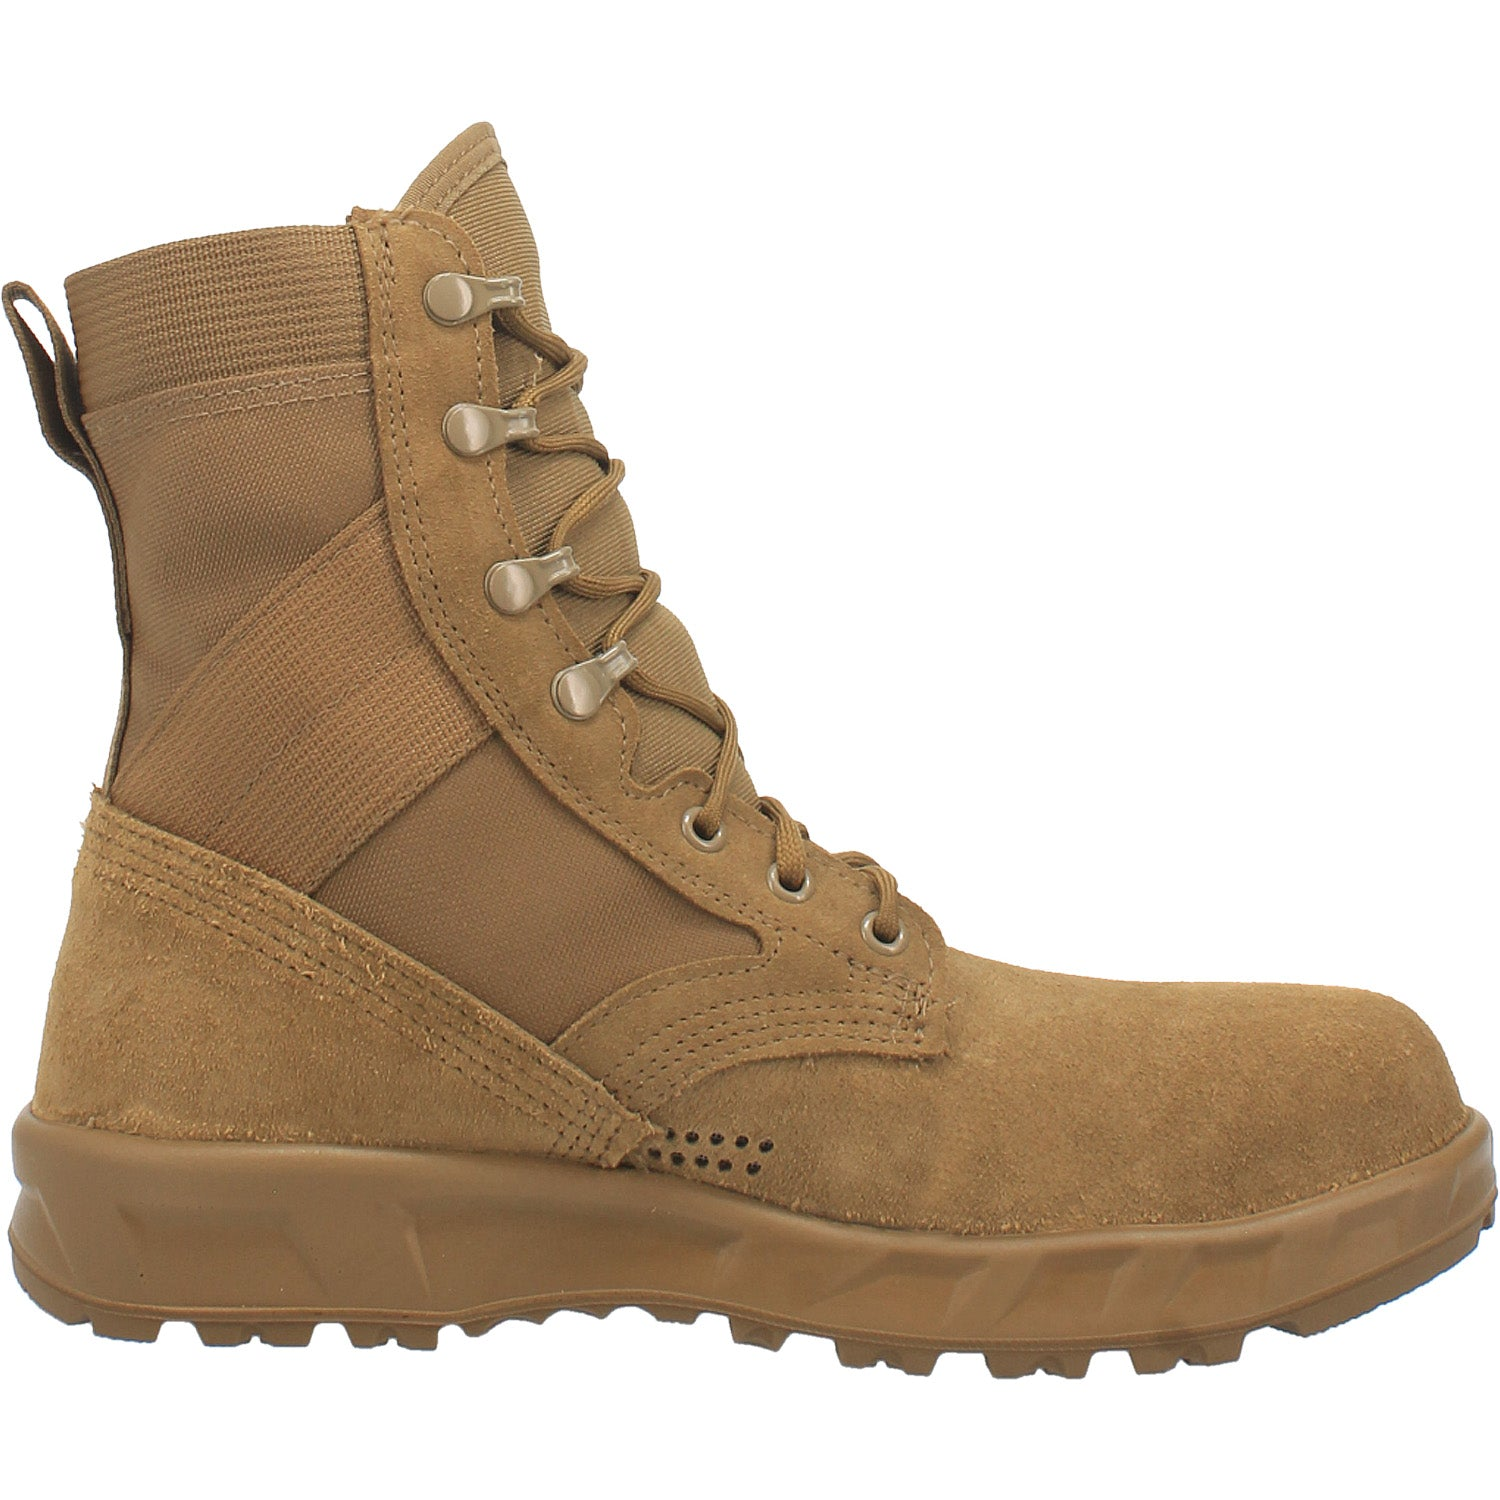 T2 Ultra Light Hot Weather Steel Toe Combat Boot 14940839673898